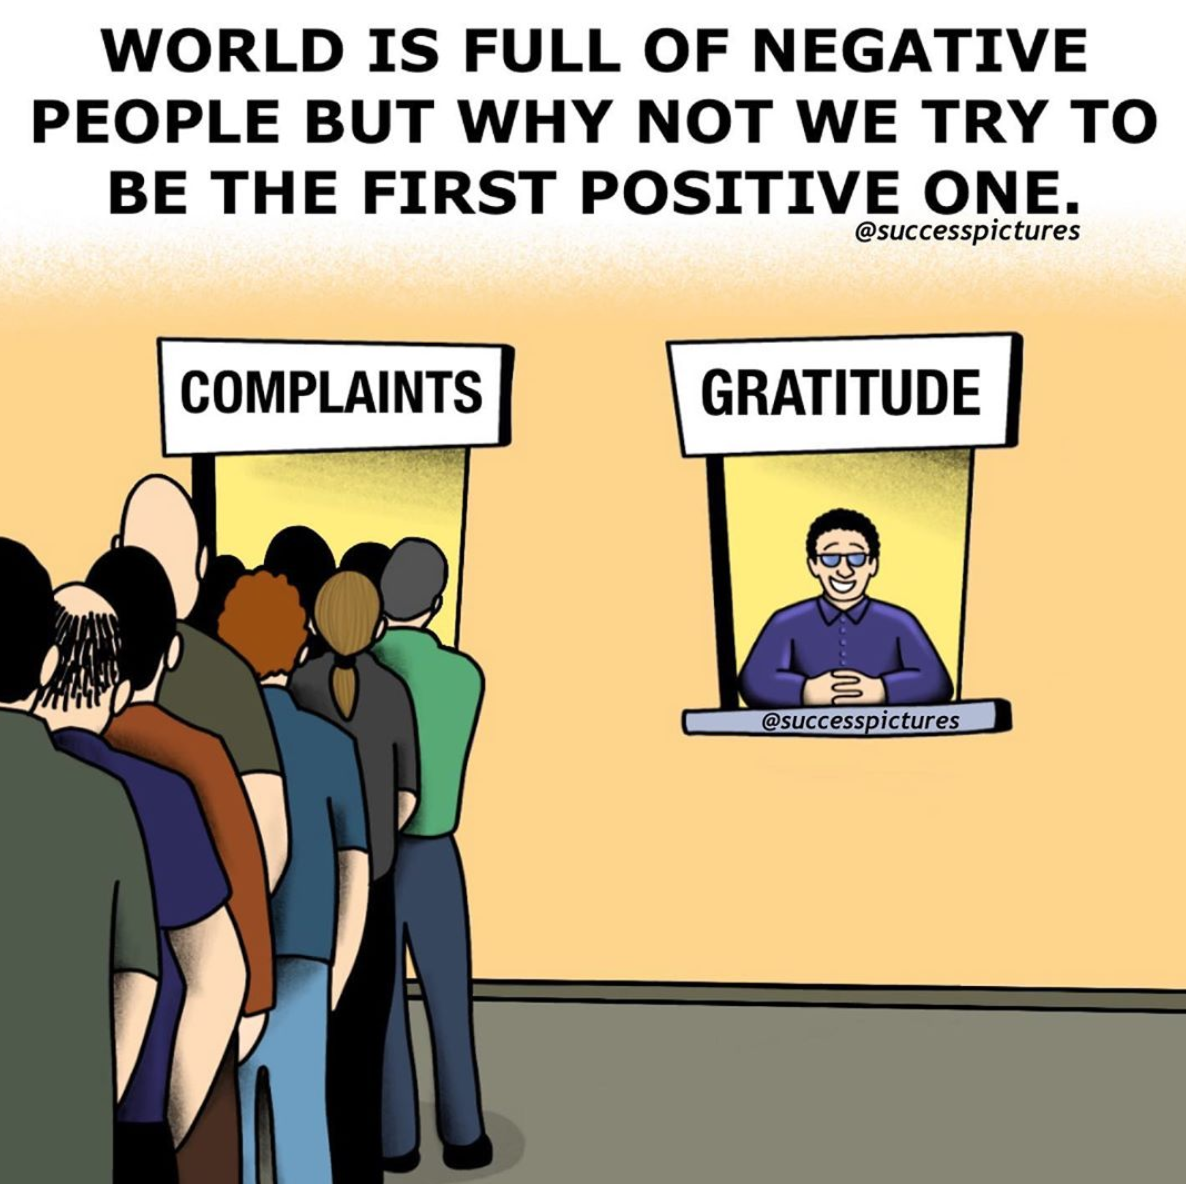 [Image] Stop complaining constantly and adopt an attitude of gratitude